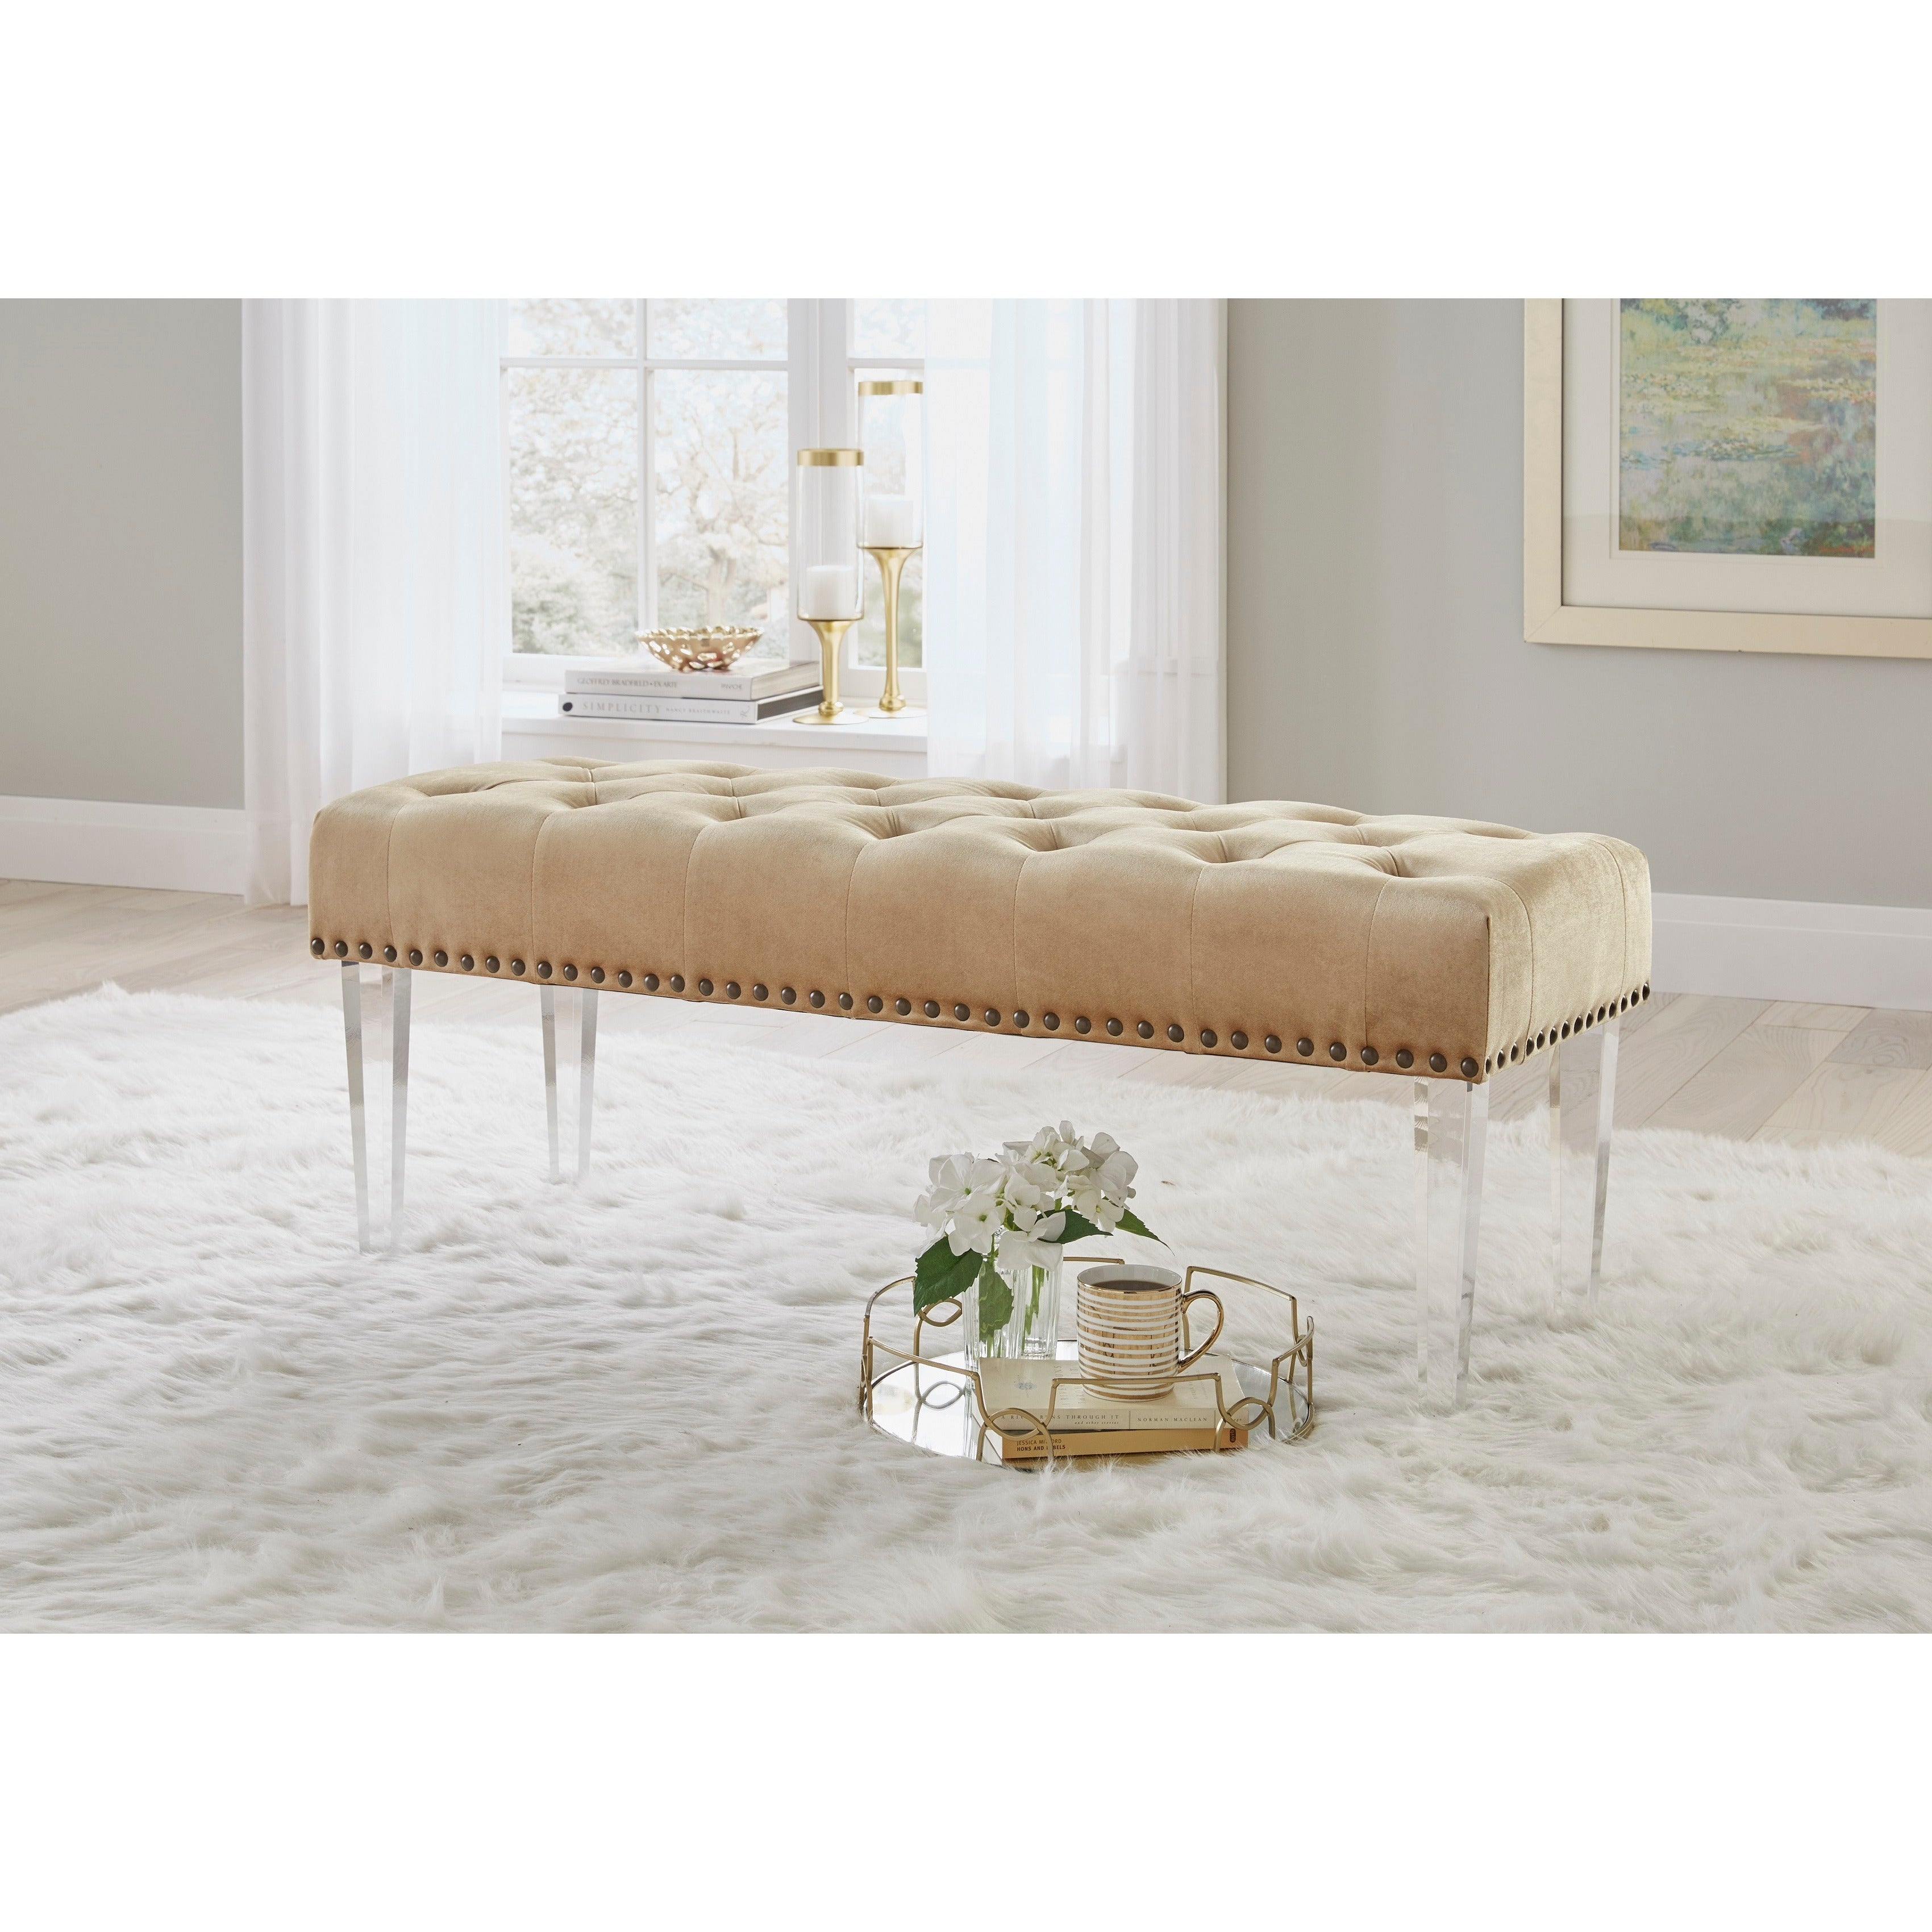 bench shipping free garden overstock product homepop velvet tufted home settee storage today